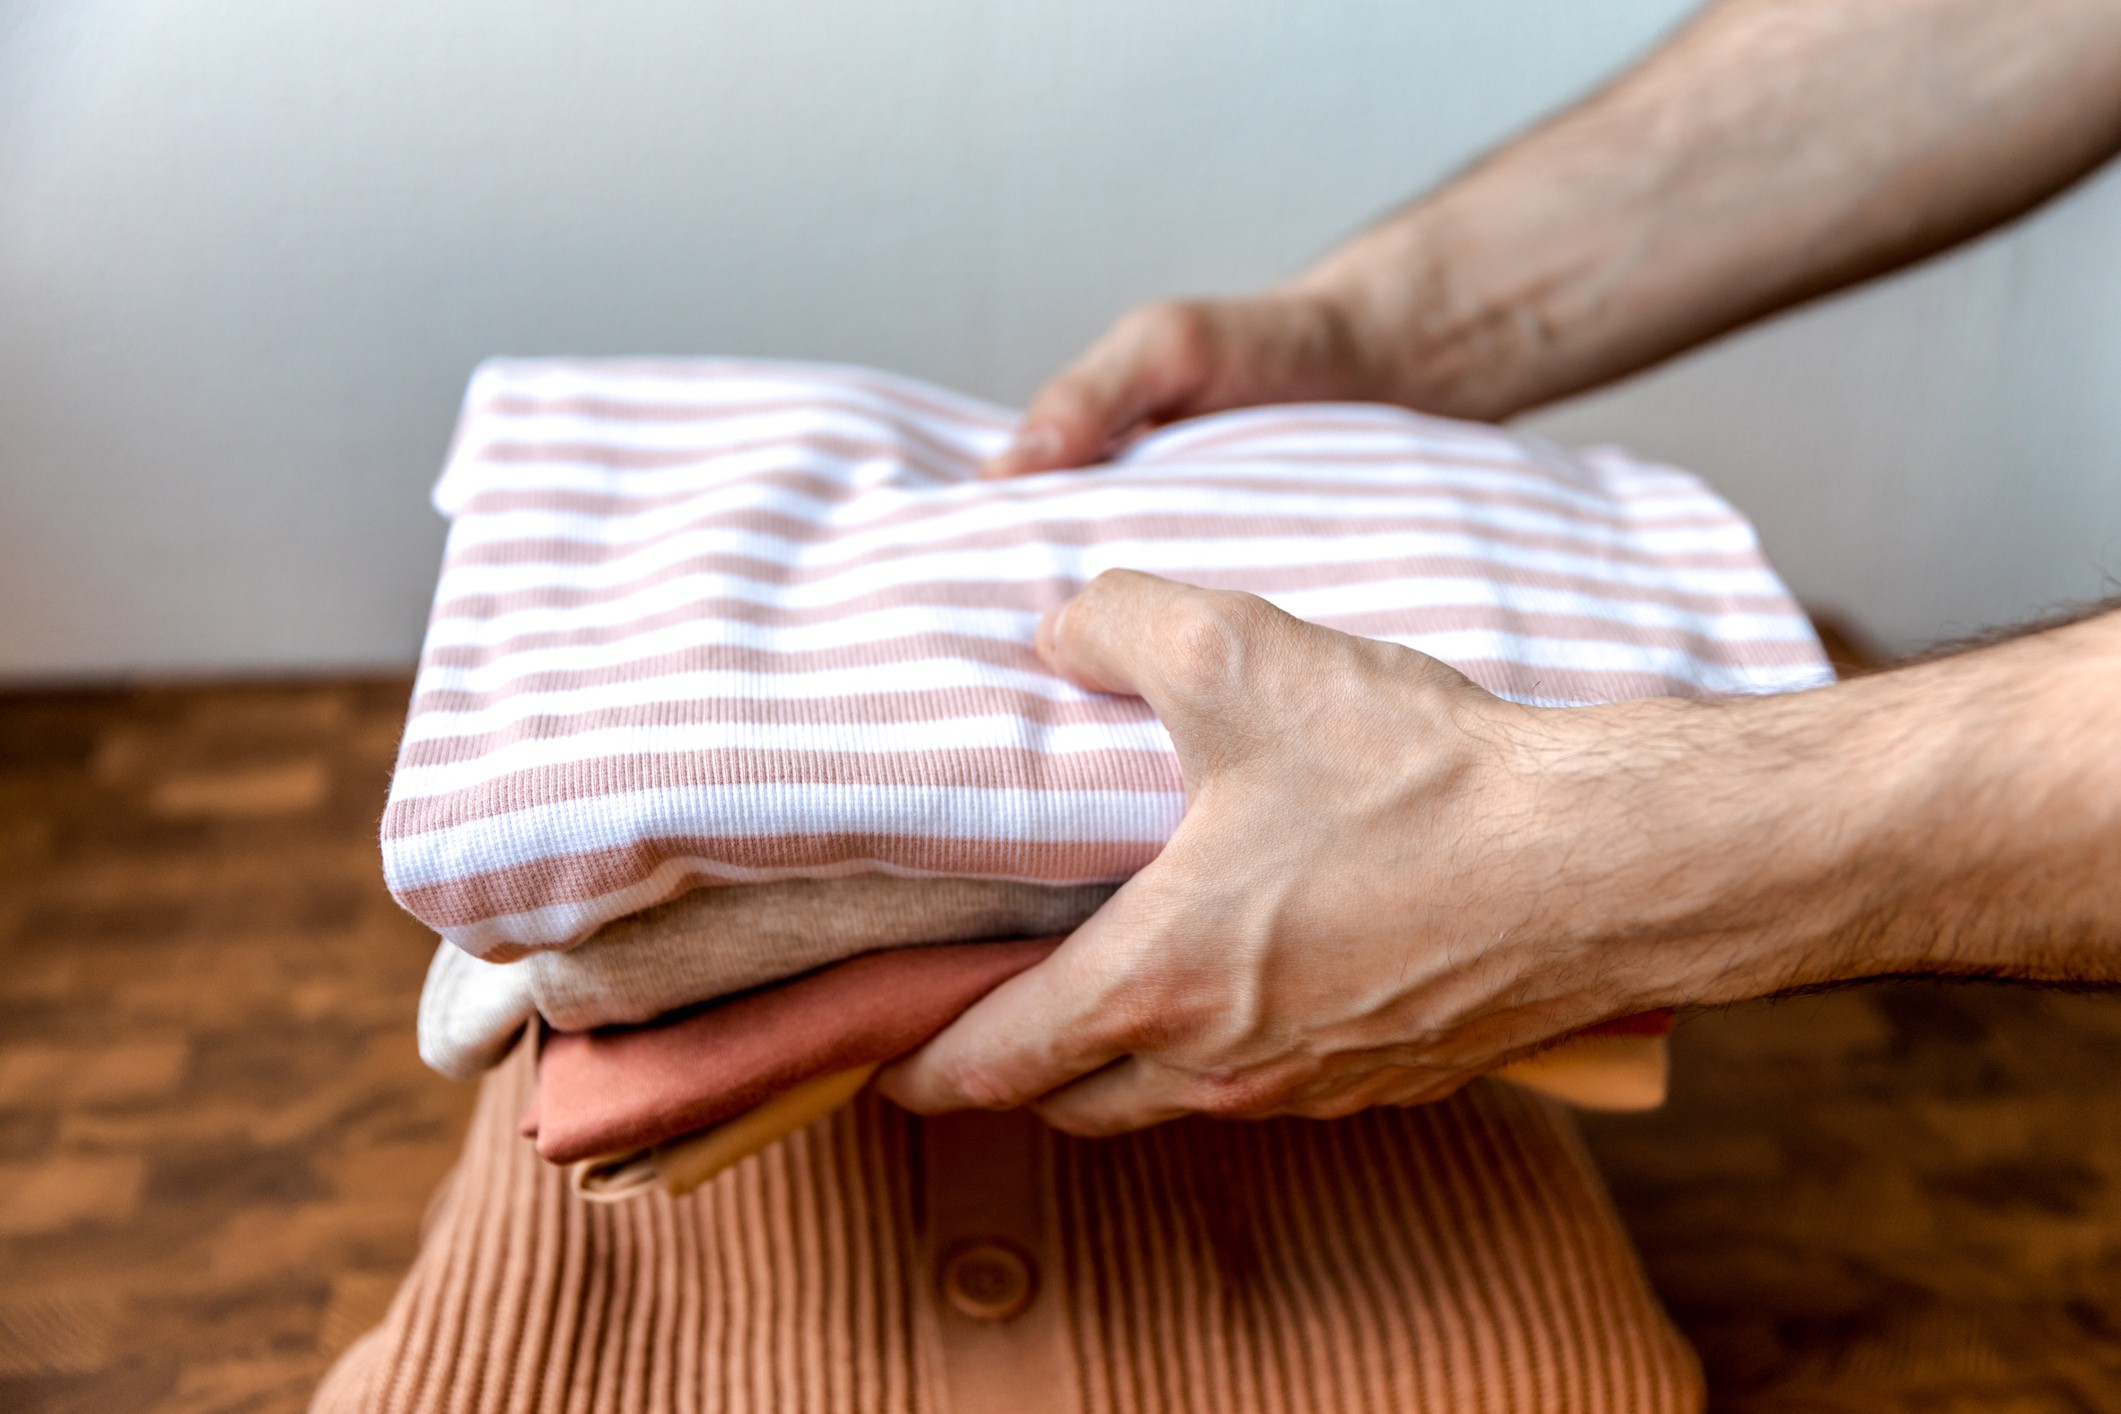 Man holding folded clothing